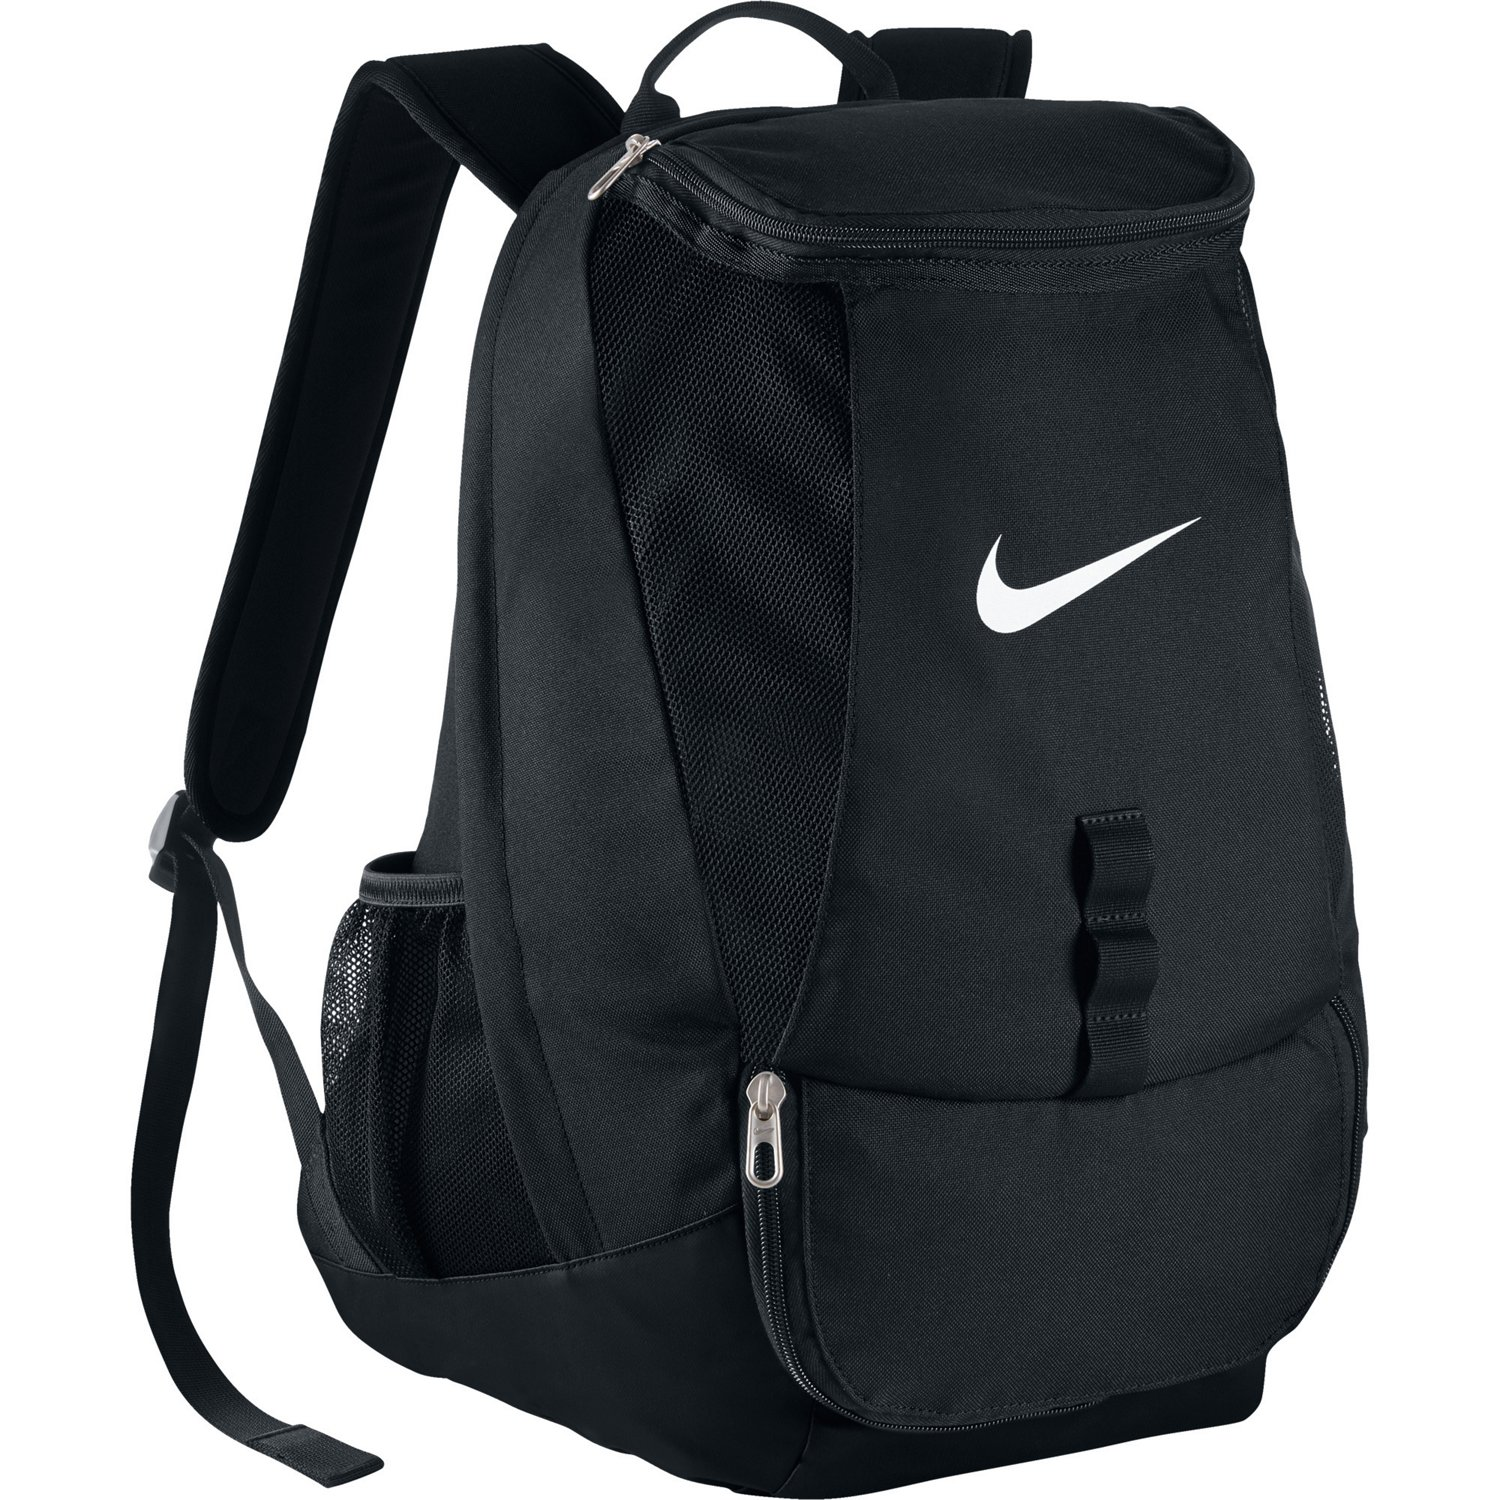 4f5c59b023 Display product reviews for Nike Men s Club Team Swoosh Soccer Backpack